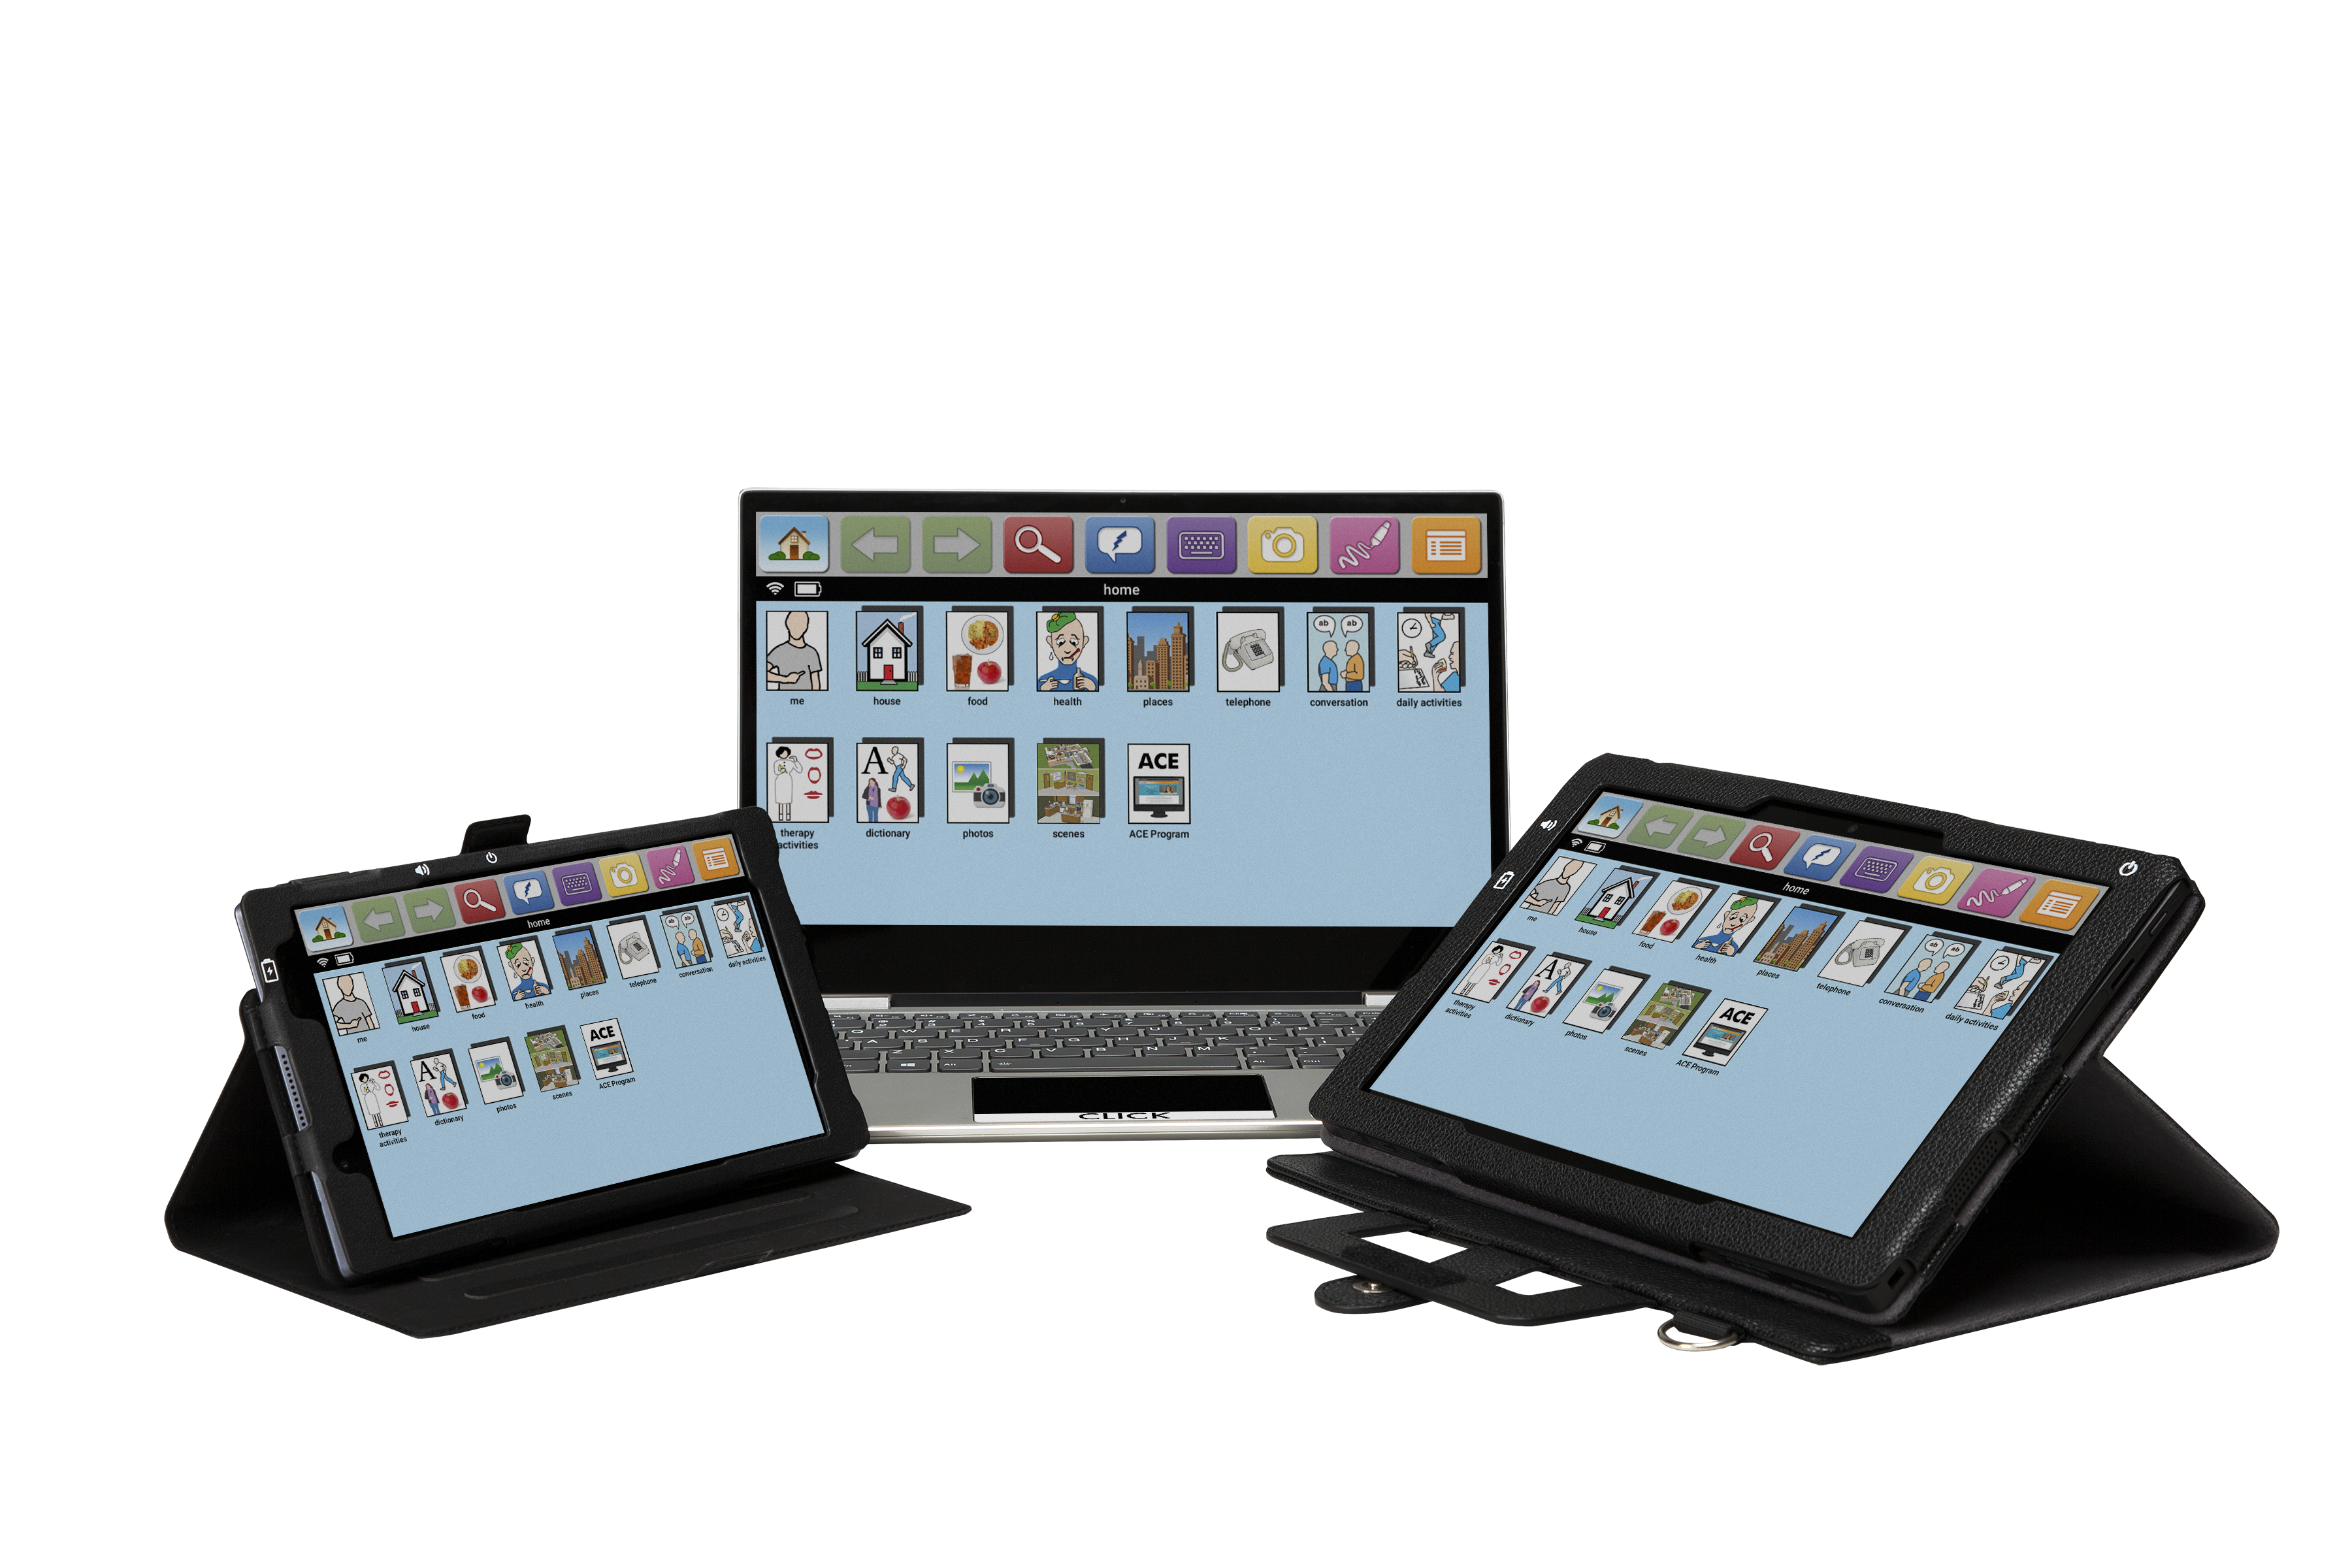 3 Things to Consider When Selecting an AAC Device